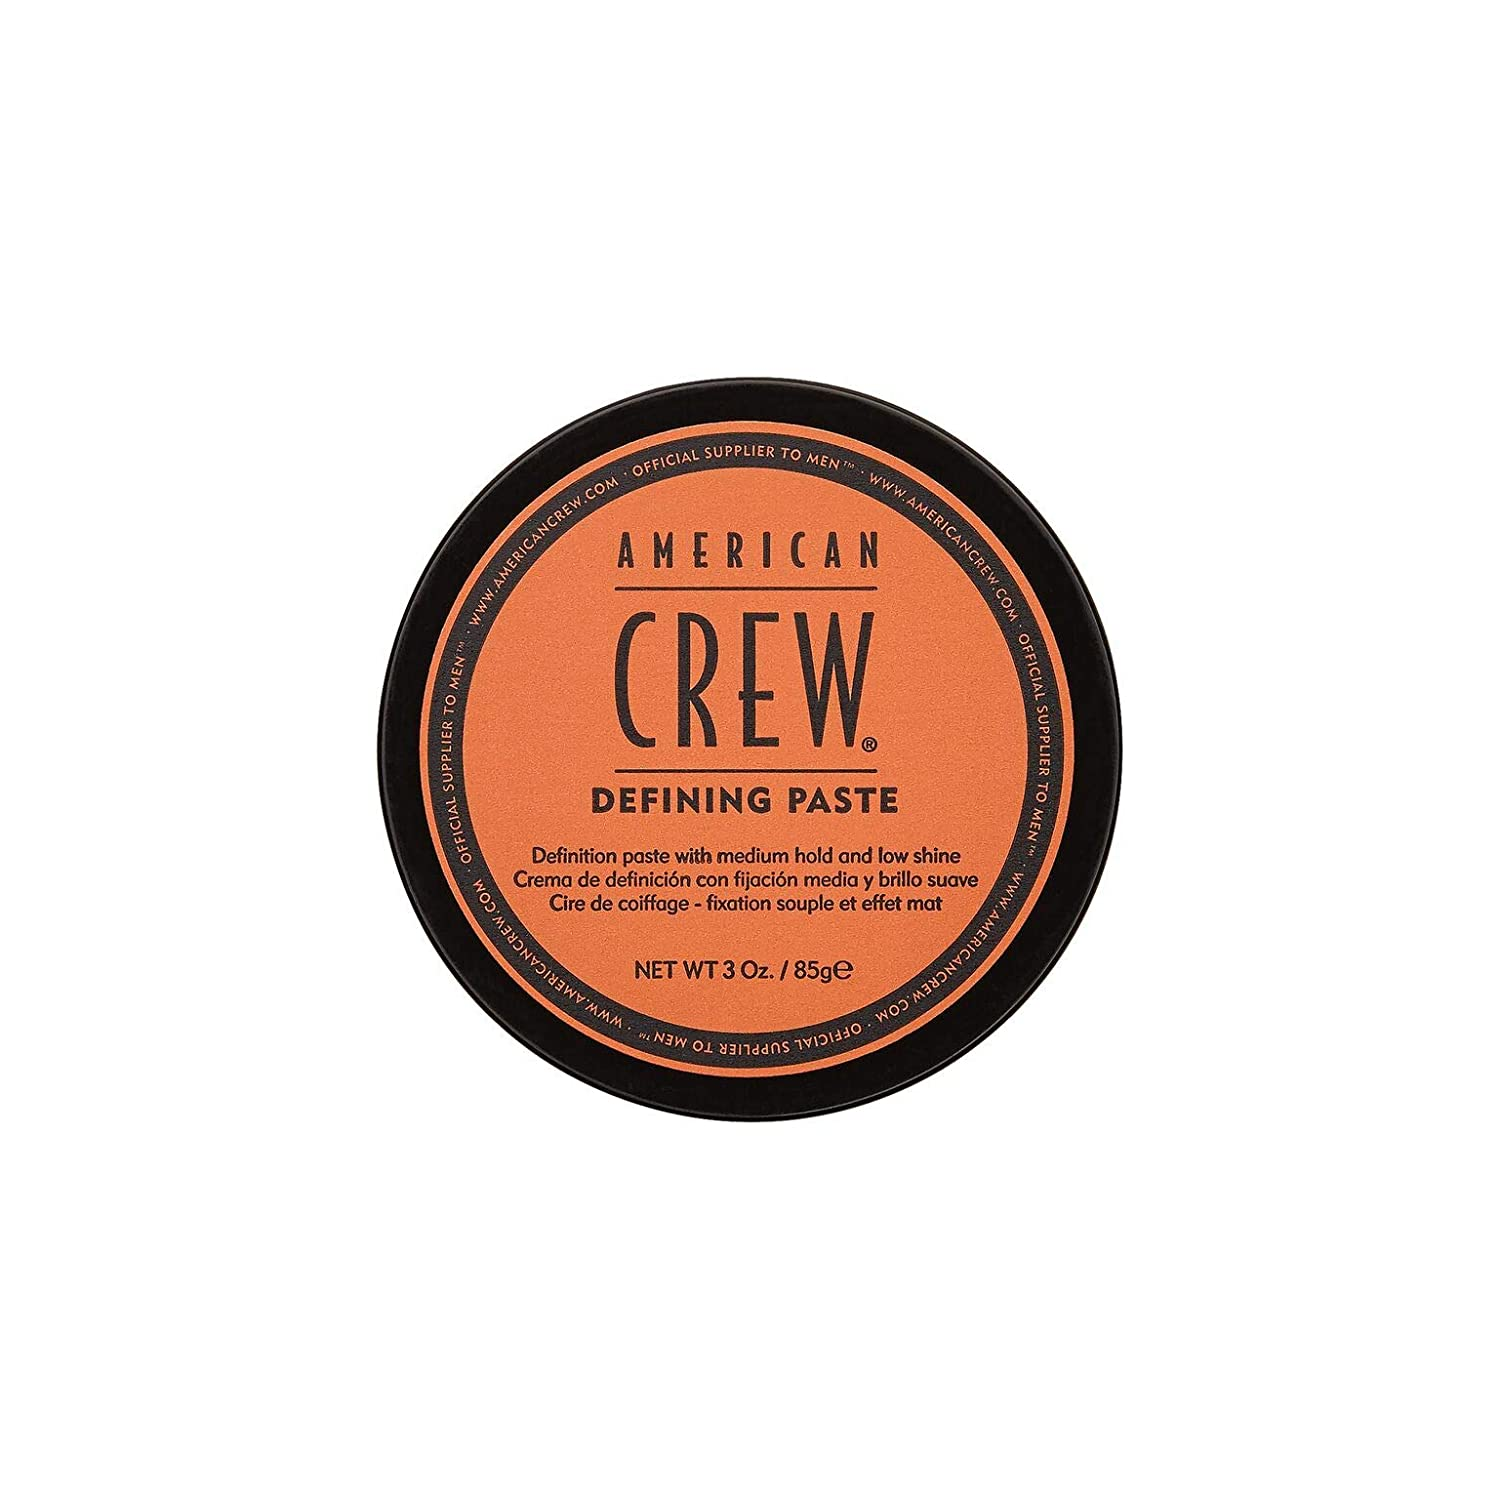 Defining Paste by American Crew for Men - 3 oz Paste Revlon Professional 2304400000 S-AM-023-85